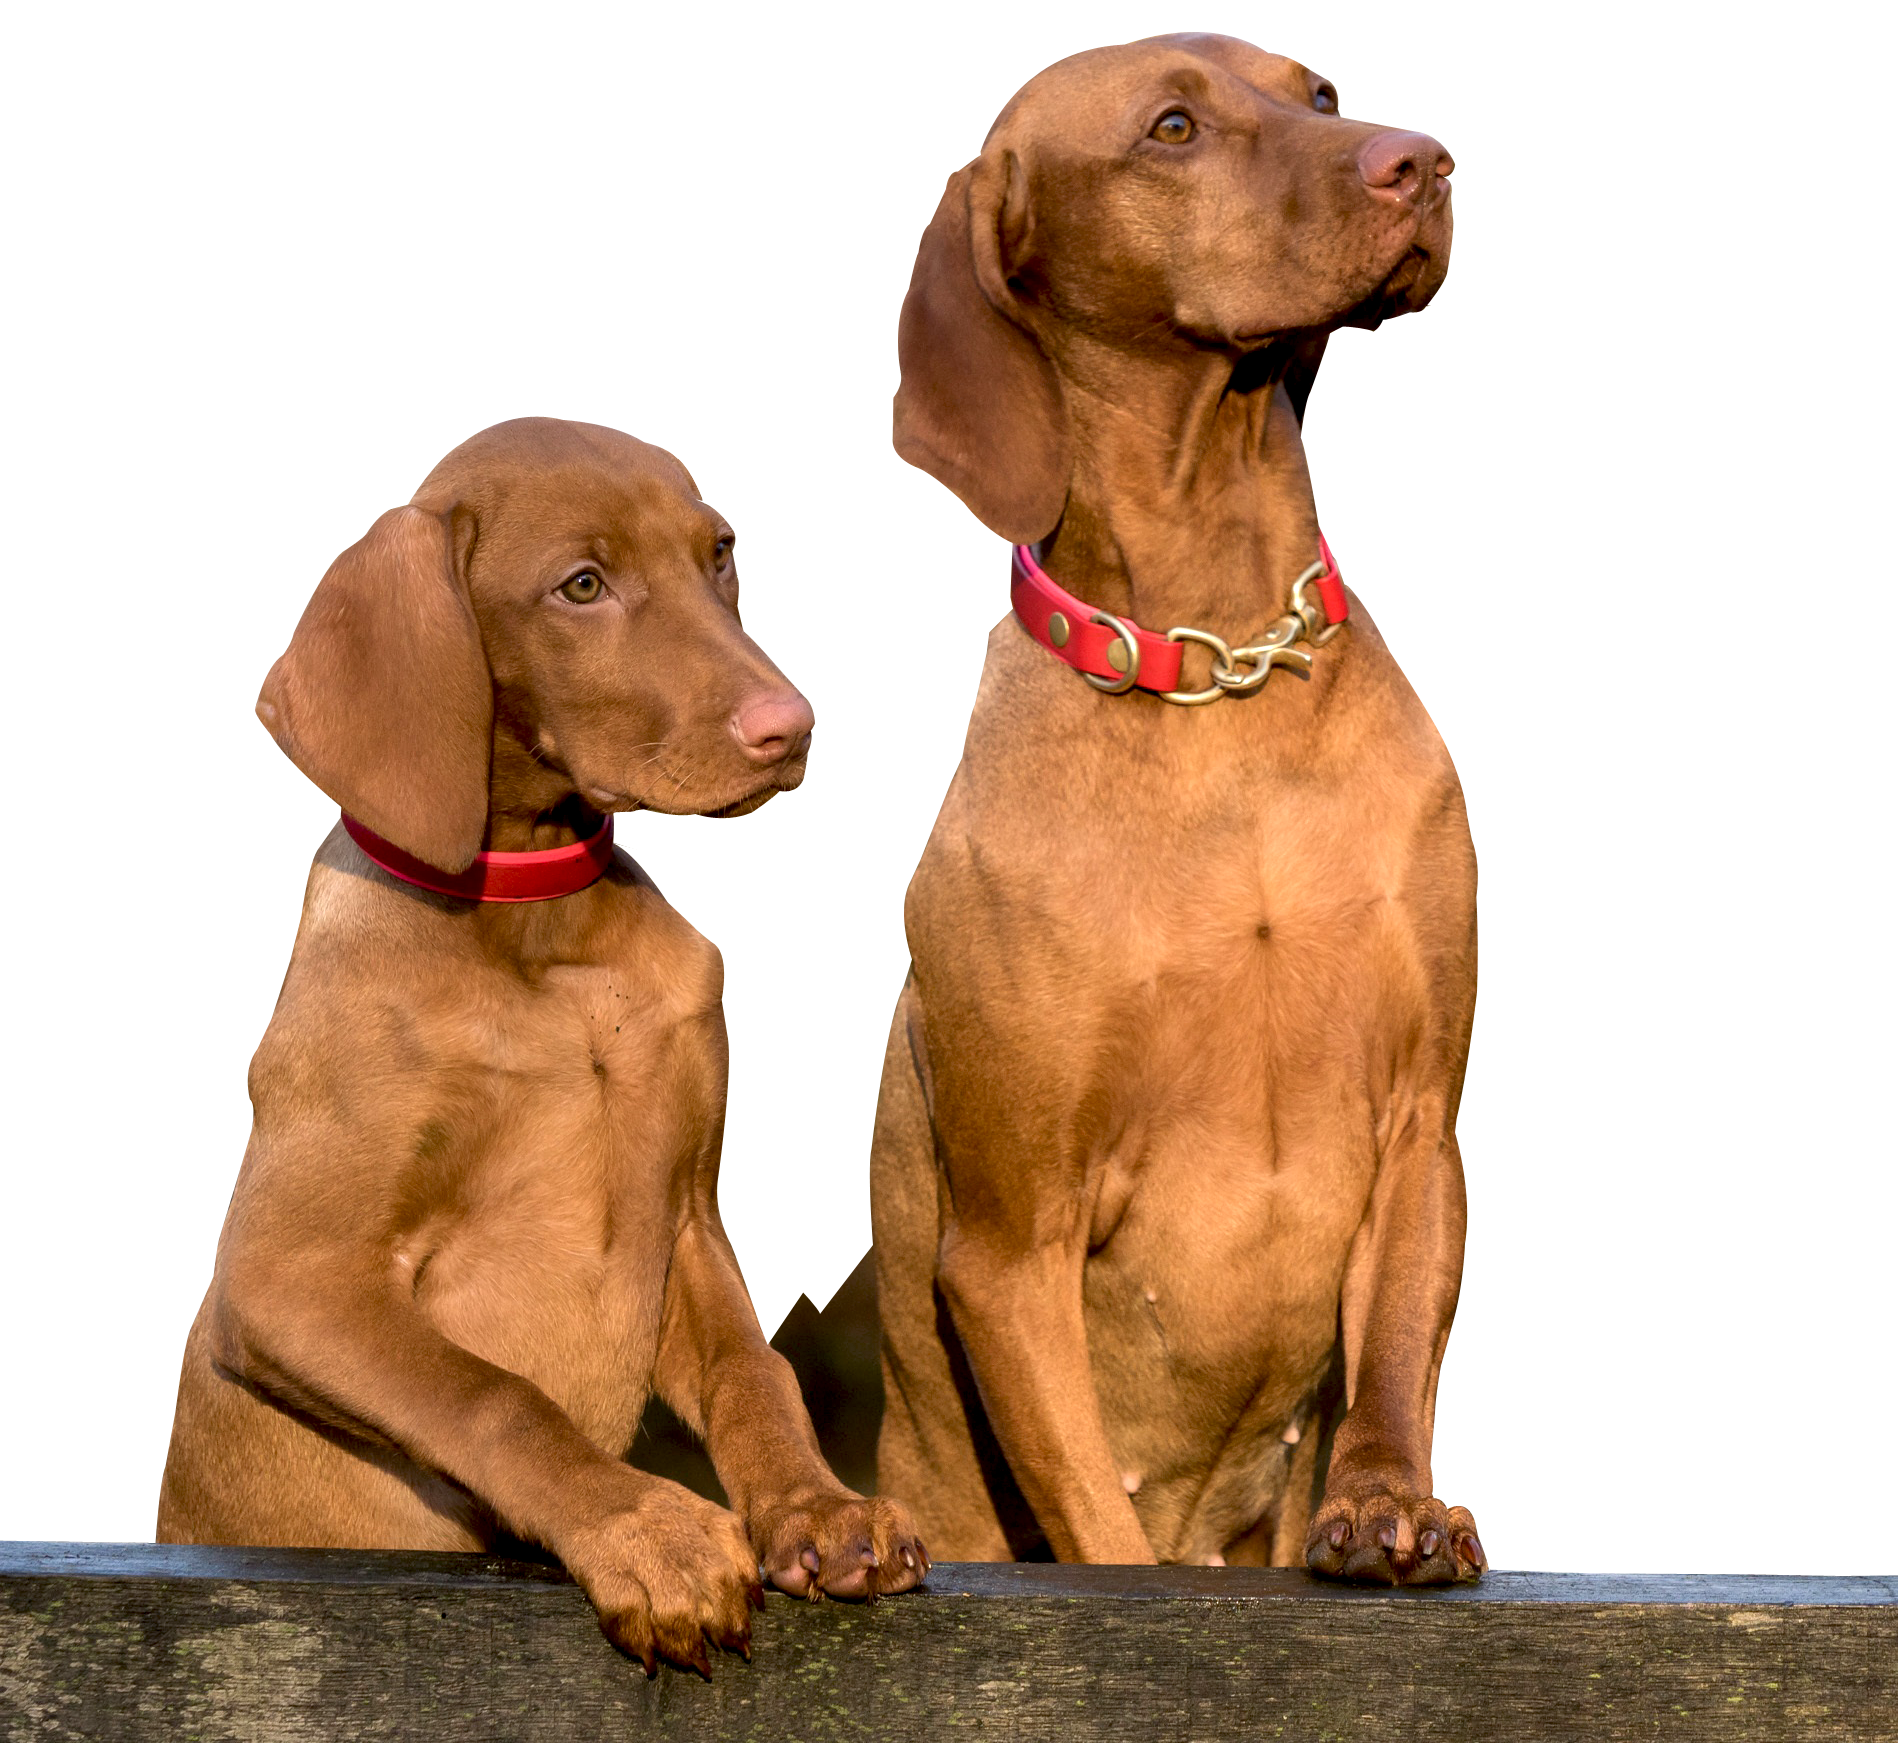 Two Dogs PNG Image.